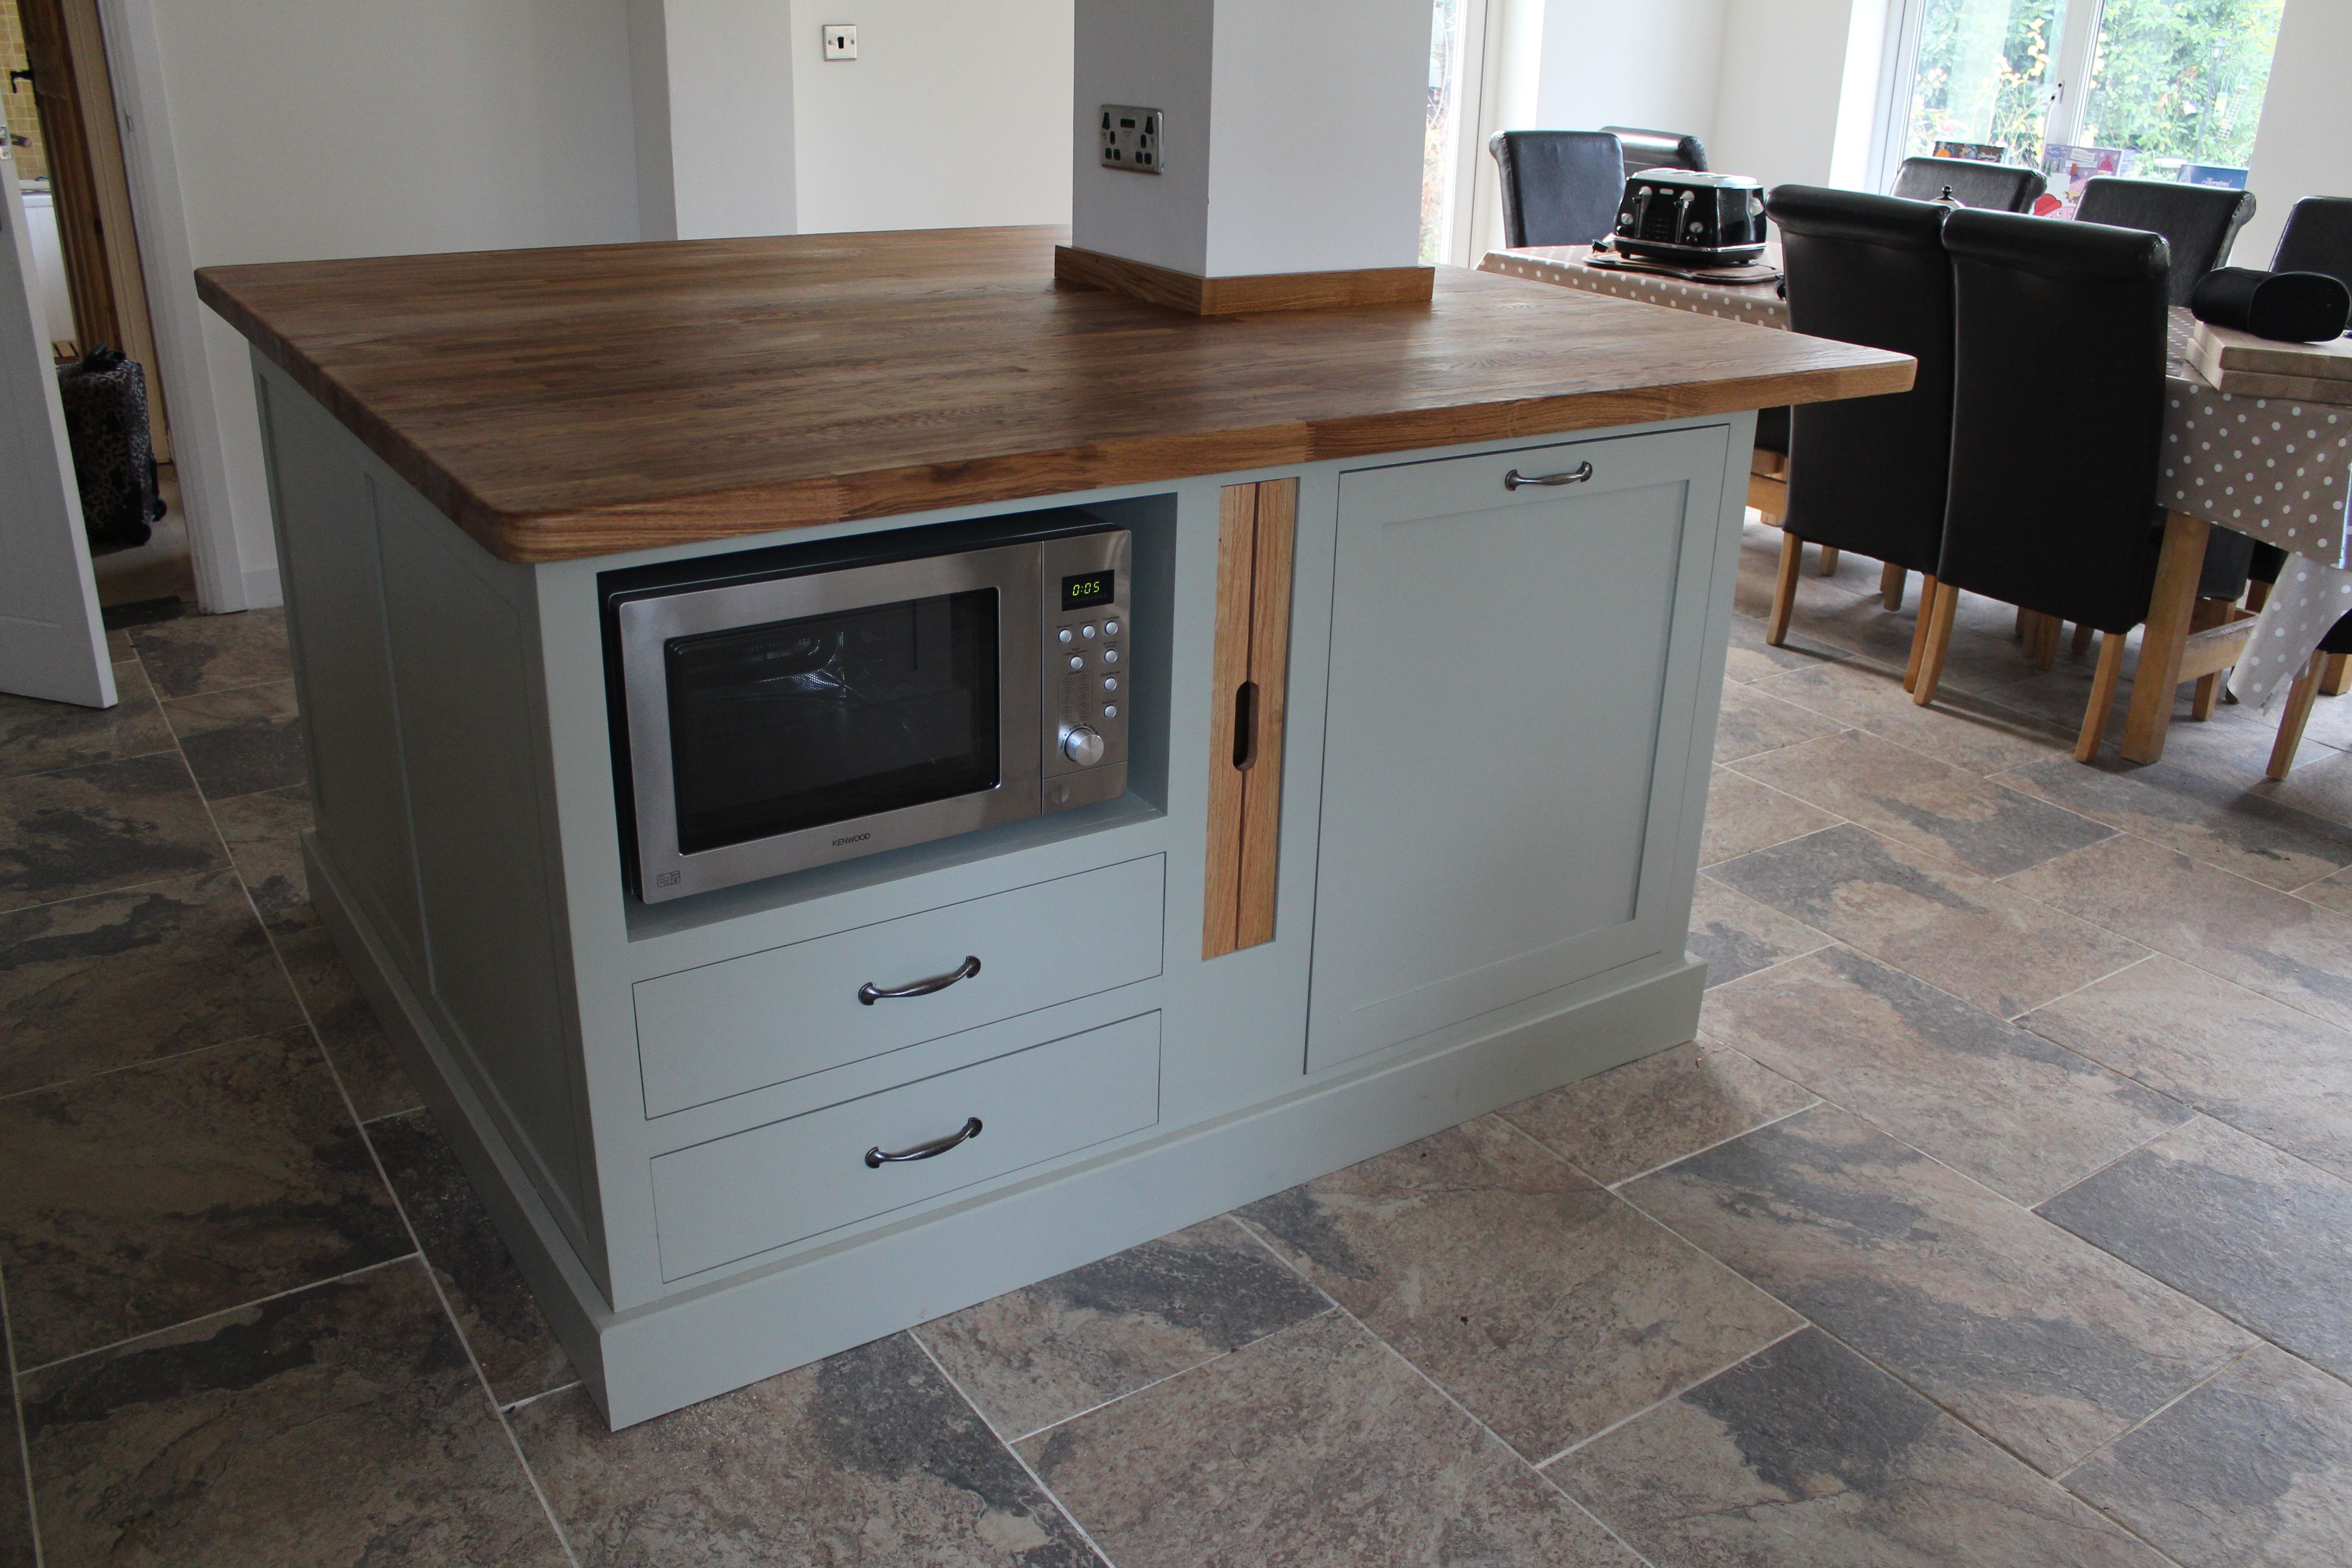 A kitchen island built around a pillar with a microwave on